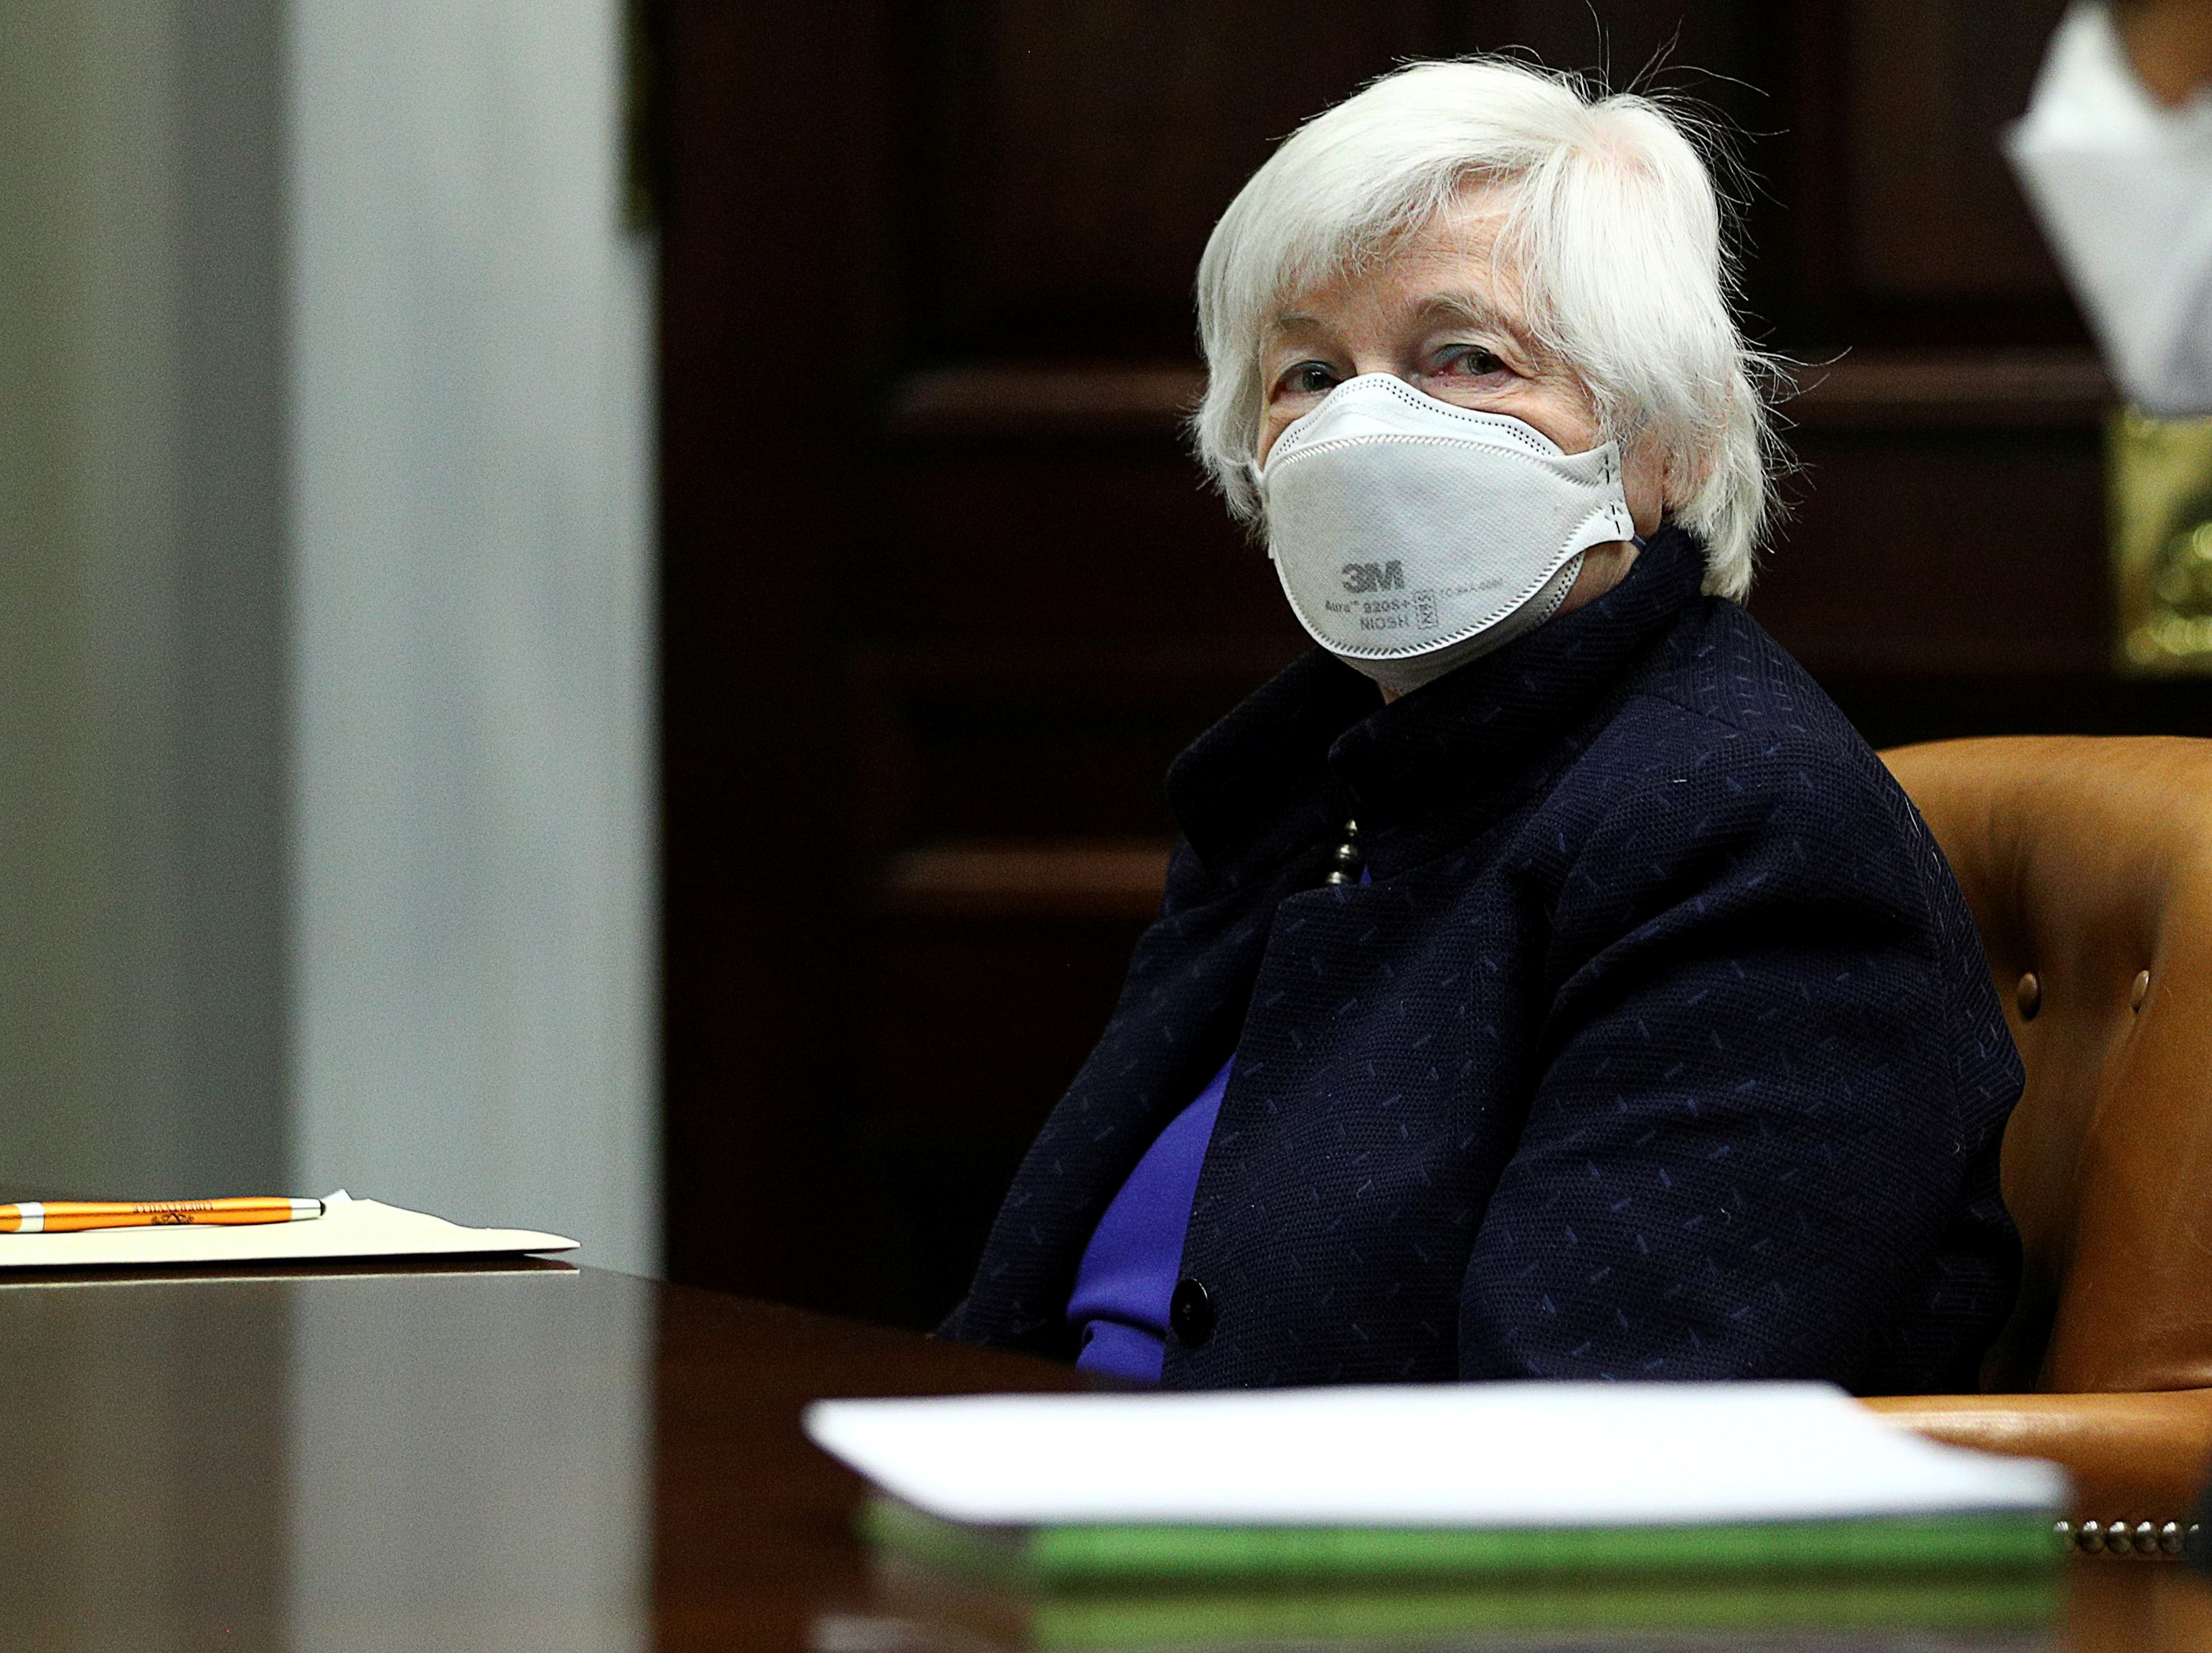 U.S. Treasury Secretary Janet Yellen attends an economic briefing with U.S. President Joe Biden in the Roosevelt Room at the White House in Washington, U.S., March 5, 2021. REUTERS/Tom Brenner/File Photo